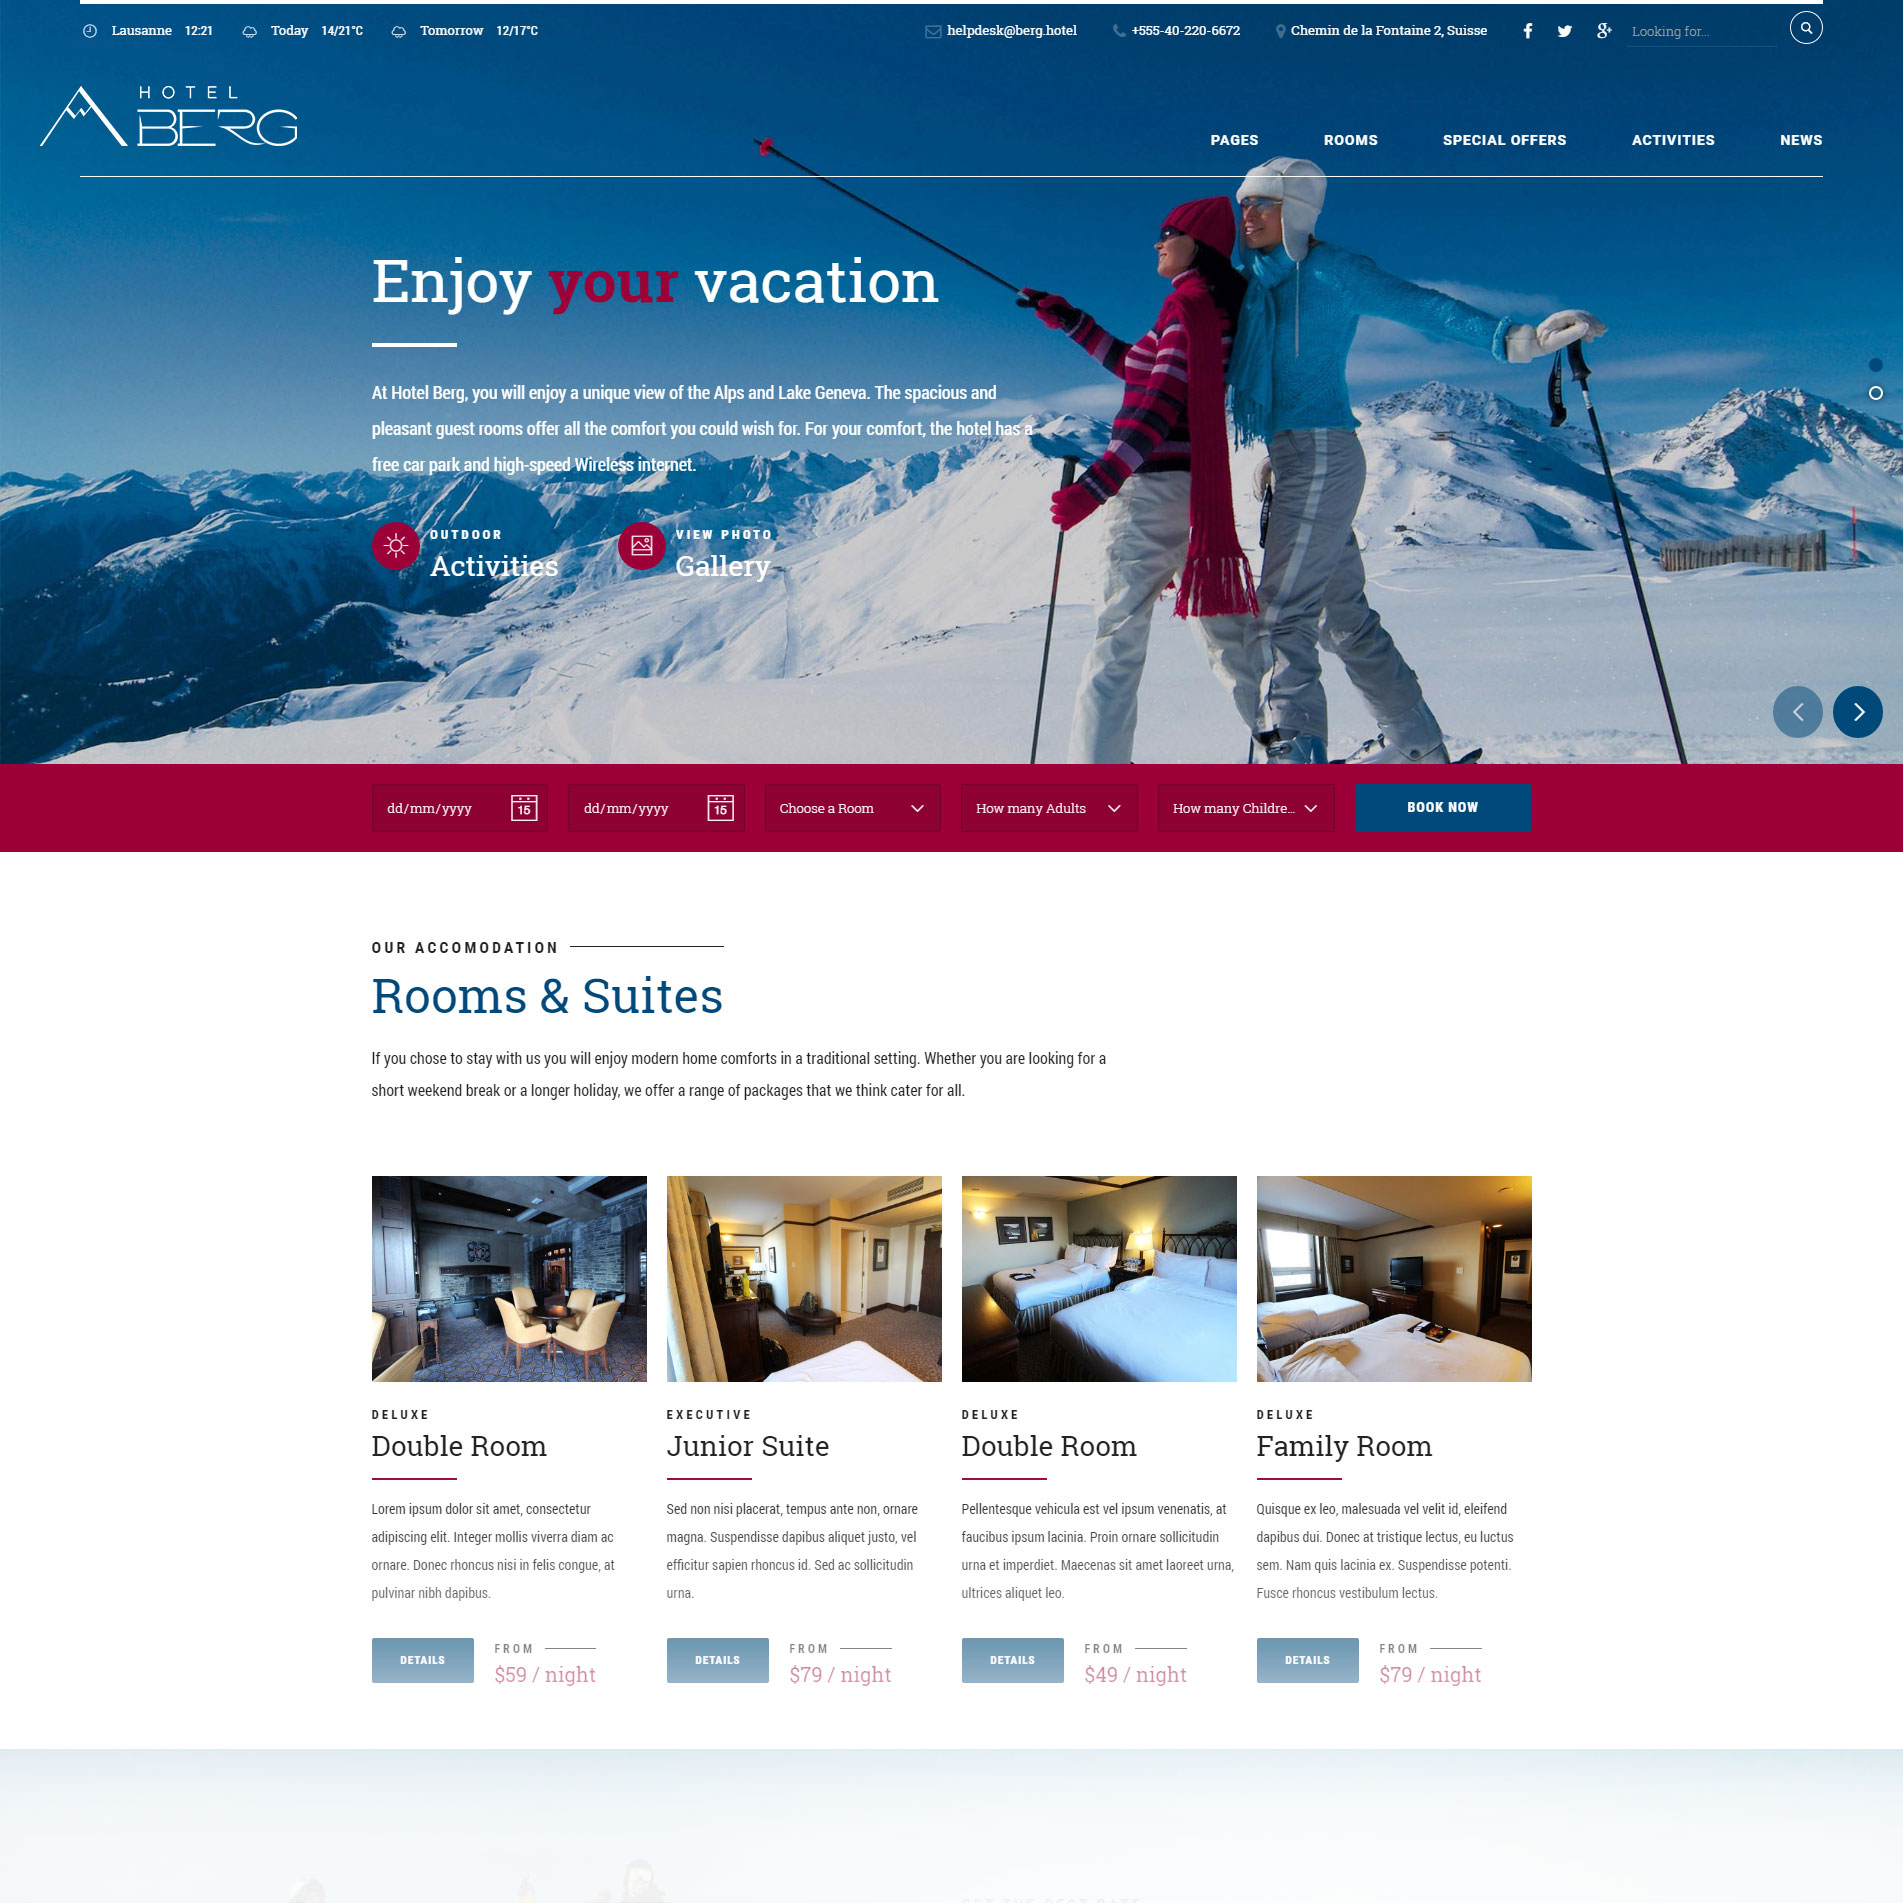 http://hotel.bold-themes.com/wp-content/uploads/2016/03/screenshot-08.jpg